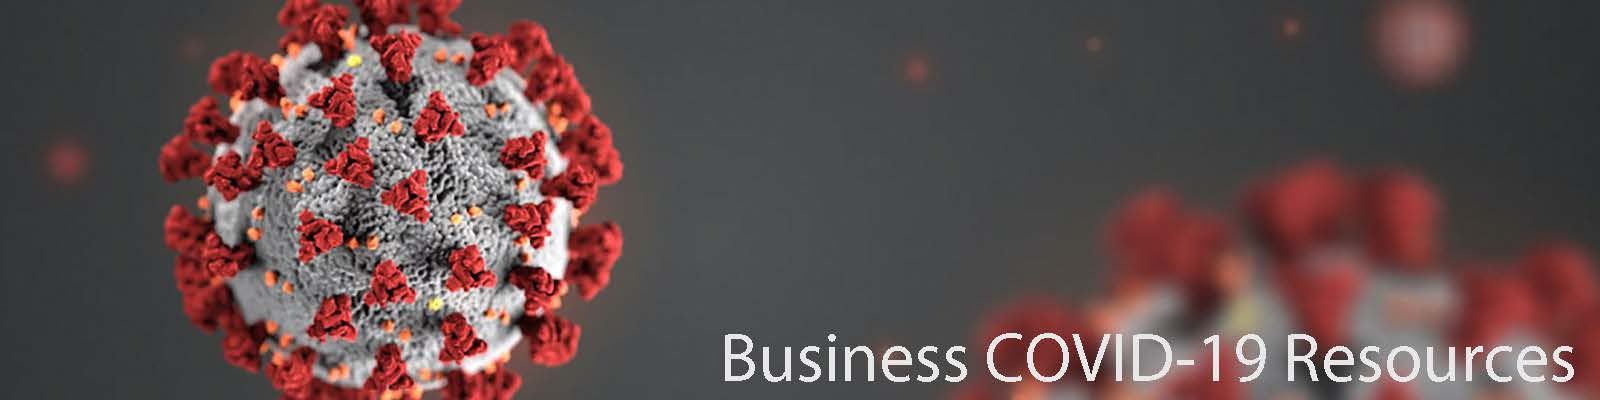 Business COVID-19 Resources Header Image